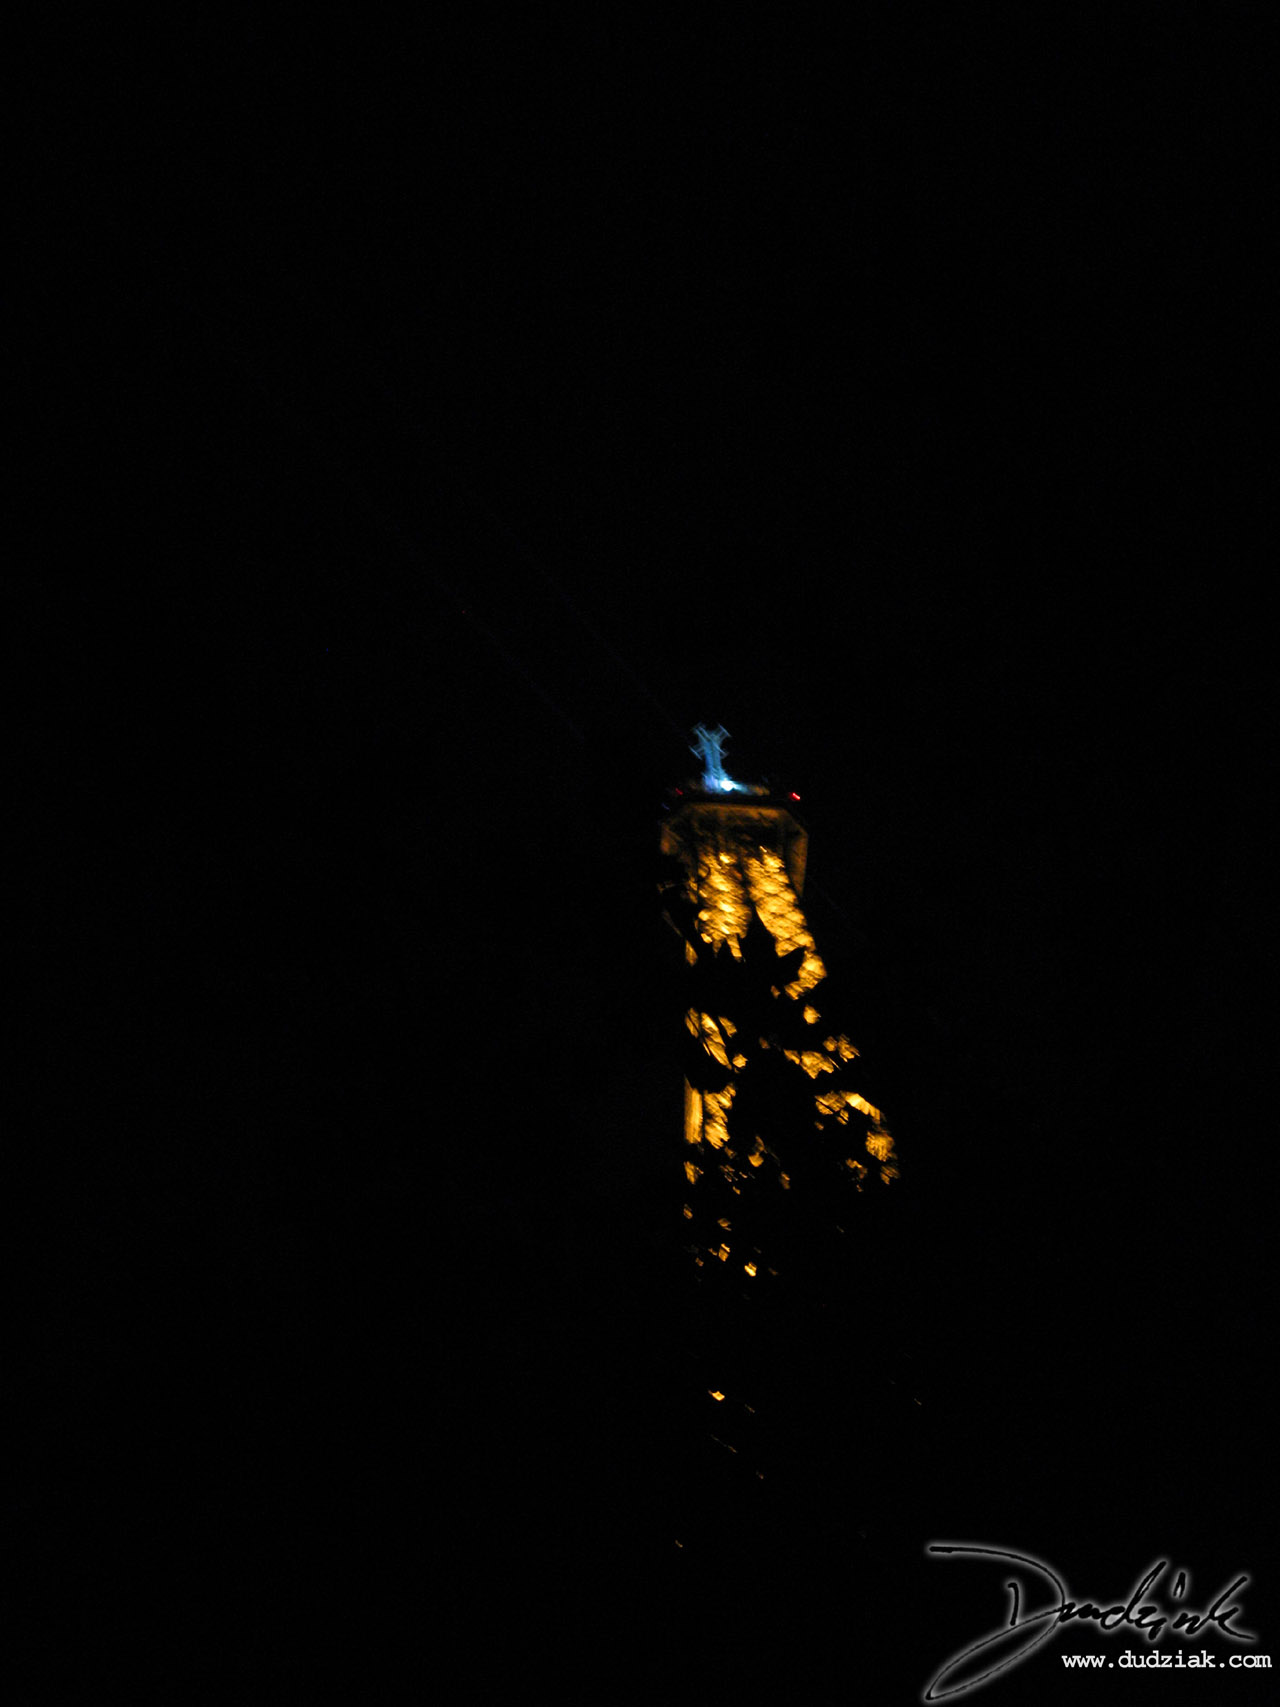 Eiffel Tower,  Bastille Day,  Paris France,  tour eiffel,  Night,  Blurry,  Trees